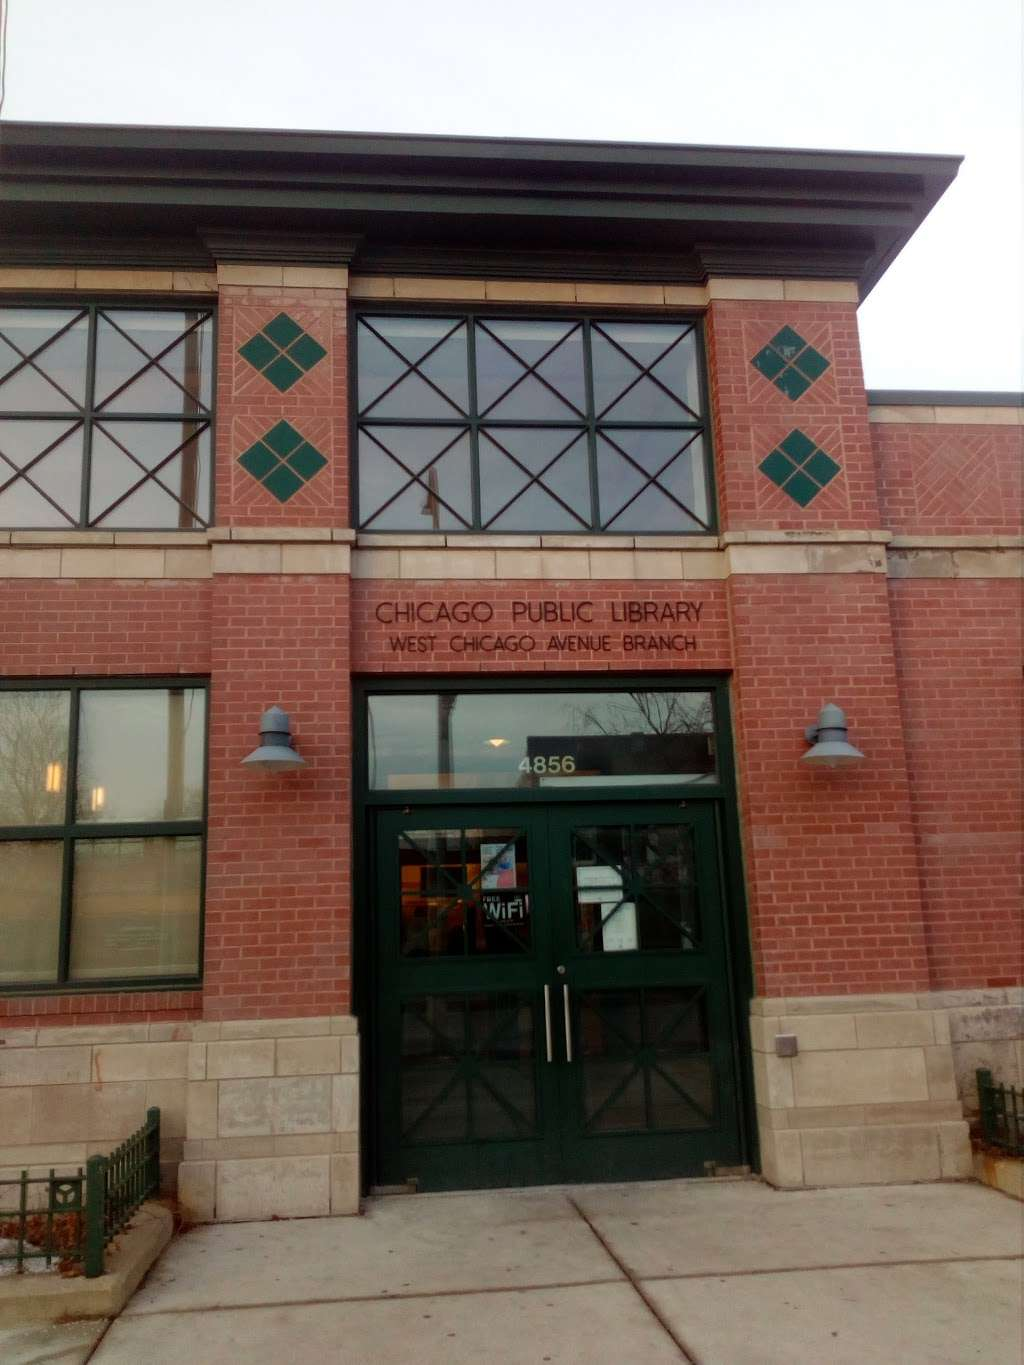 West Chicago Avenue Branch, Chicago Public Library - library  | Photo 2 of 10 | Address: 4856 W Chicago Ave, Chicago, IL 60651, USA | Phone: (312) 743-0260